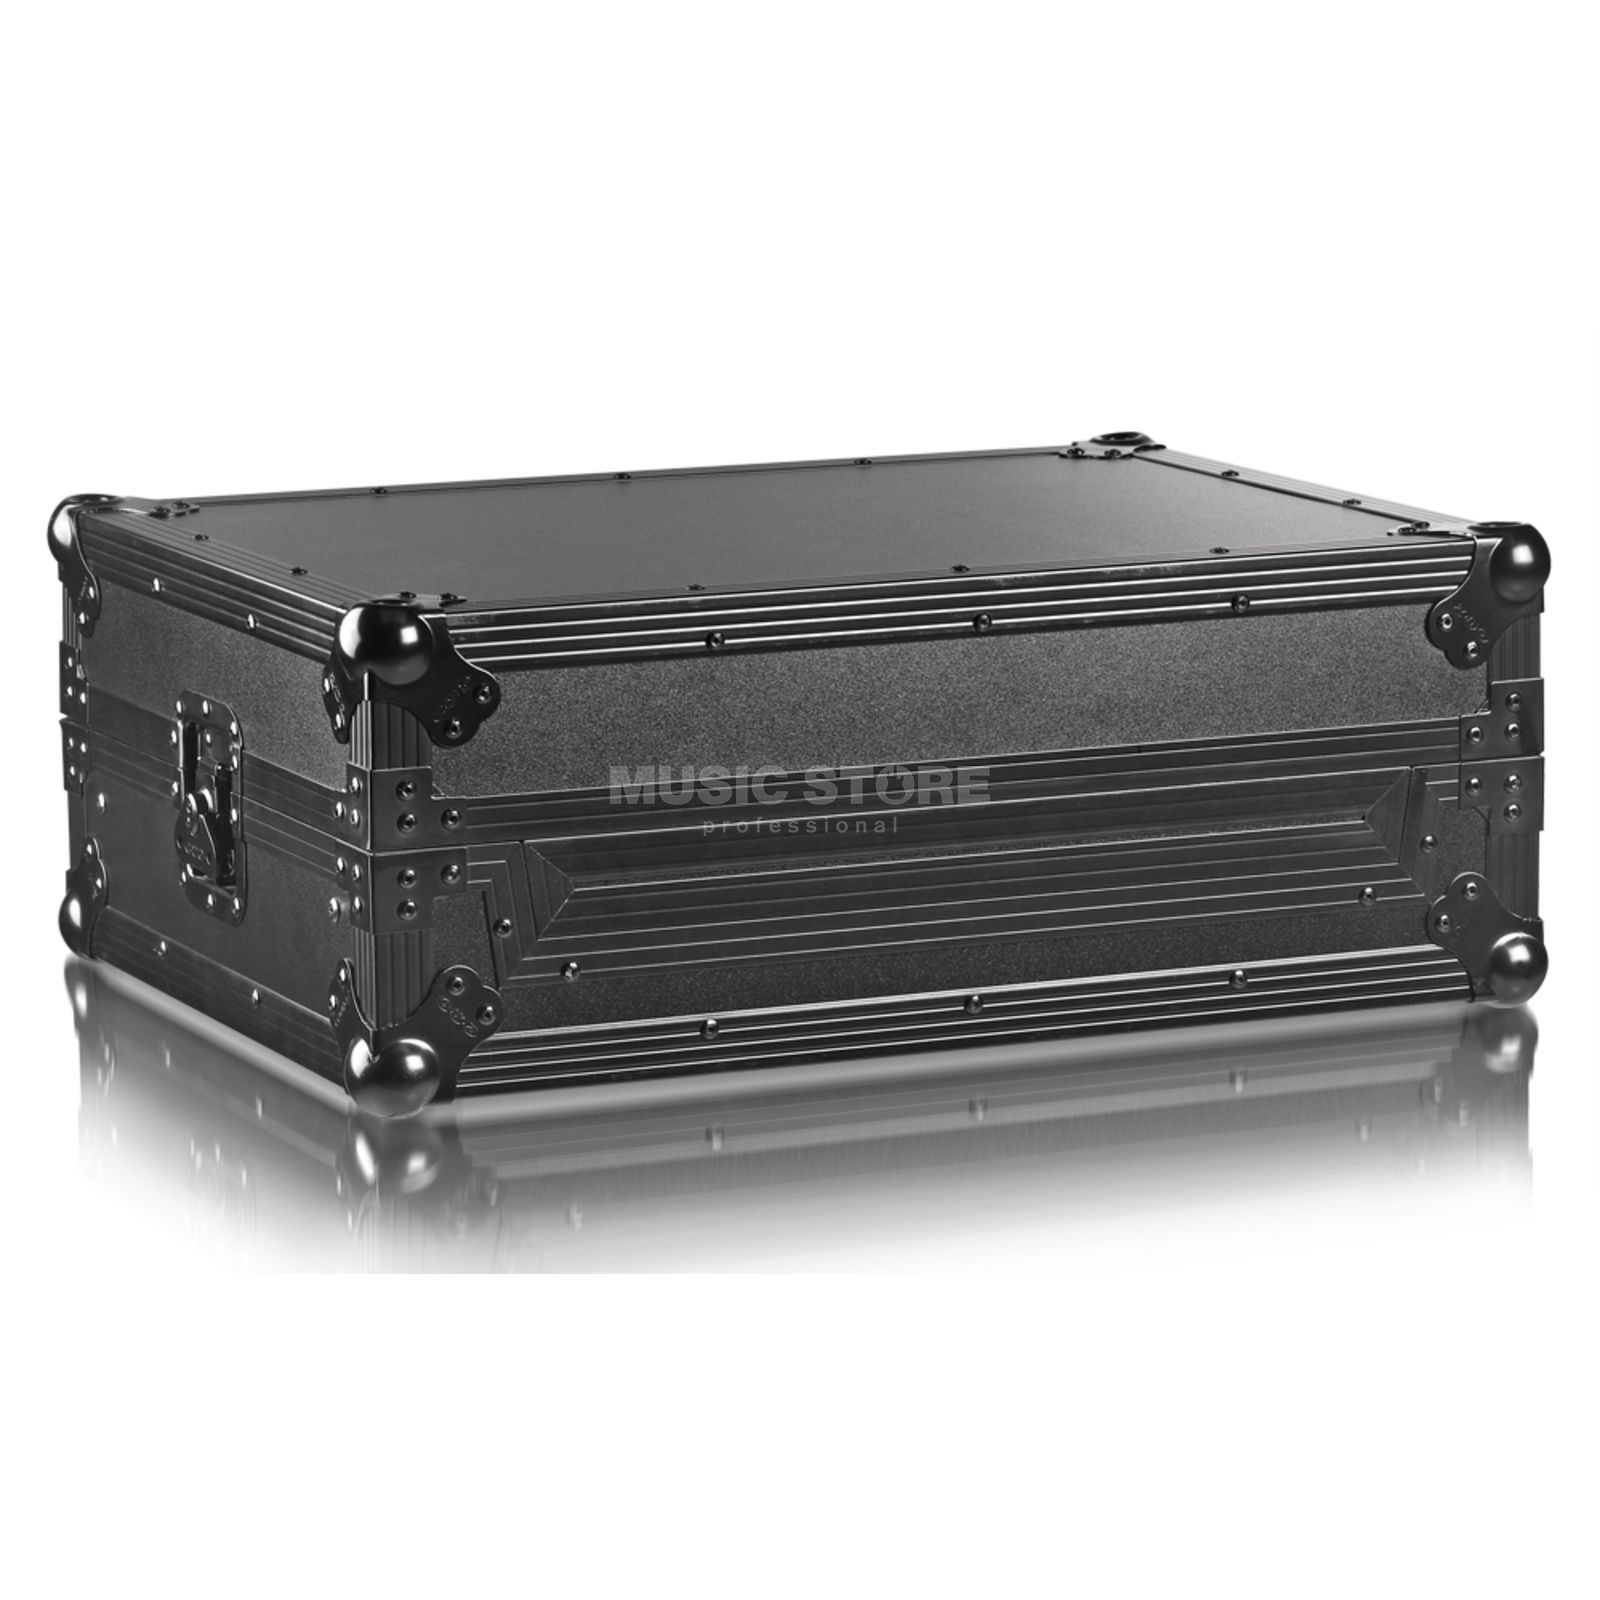 Zomo Flightcase S4 PLUS NSE for NI S4 + Laptop Zdjęcie produktu